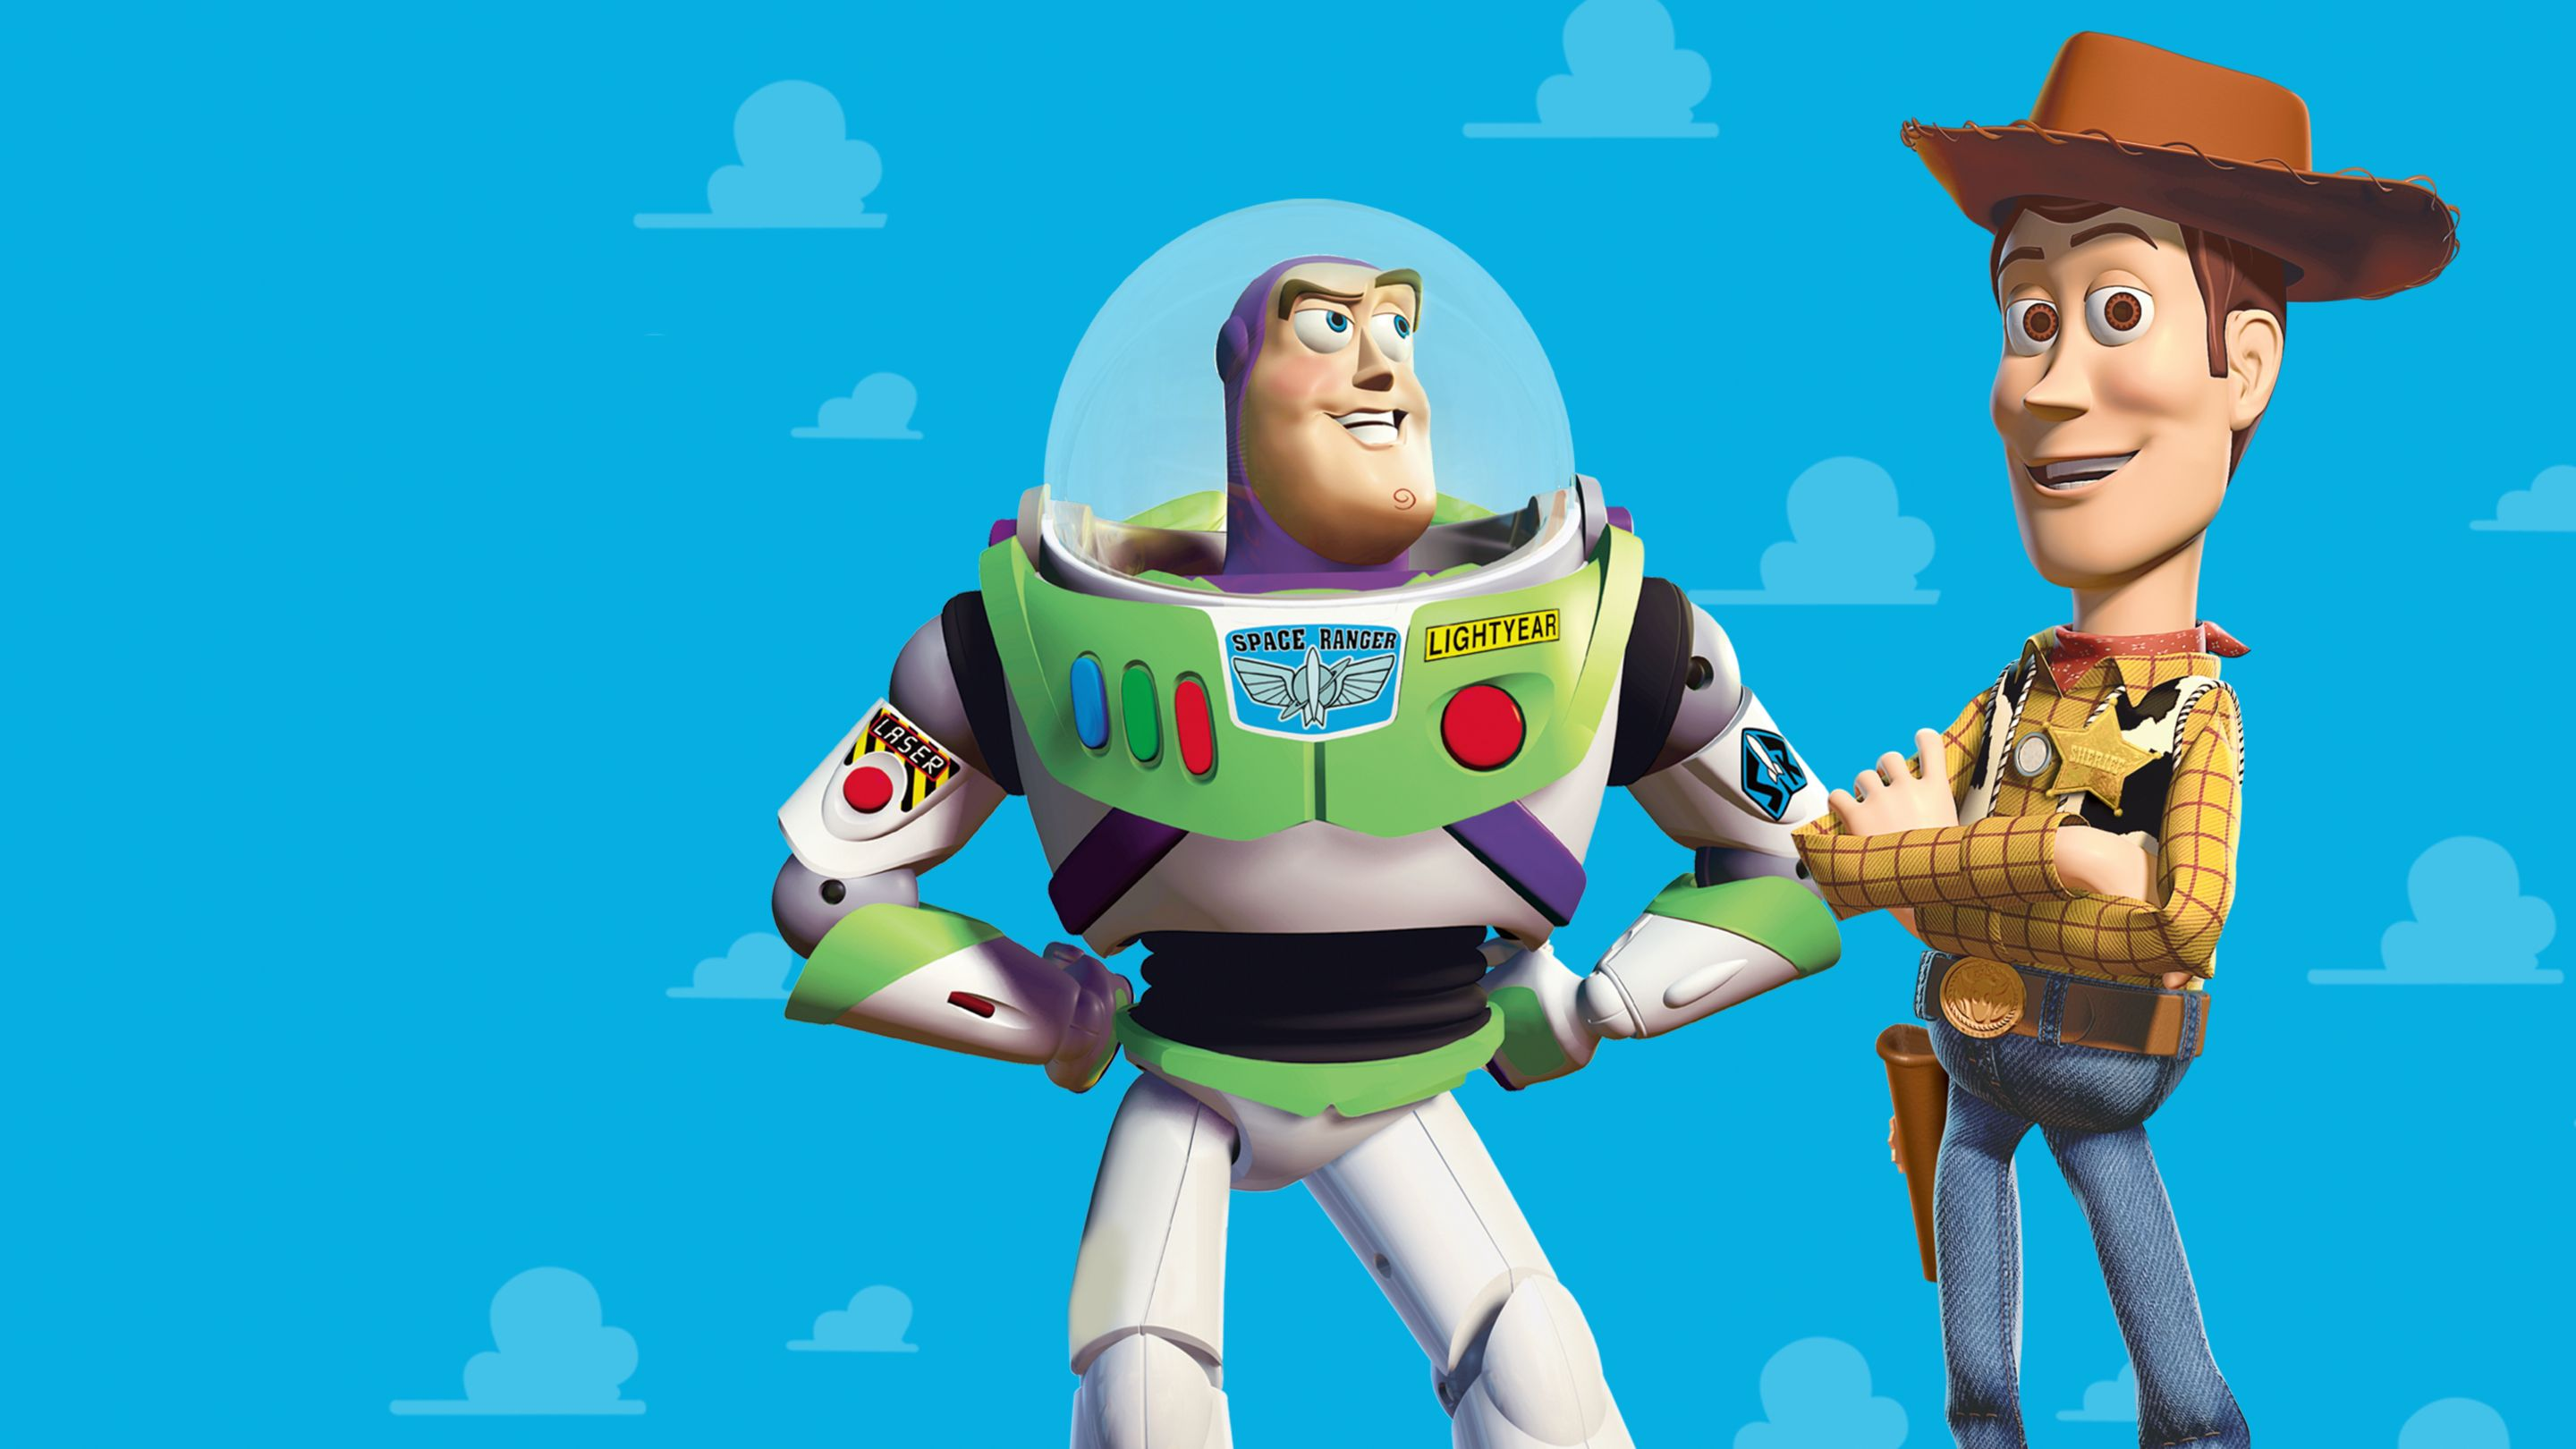 Toy story, Computer animated film where toys come to life when humans were not present. It shows the relationship between the cowboy doll and the astronaut toy.